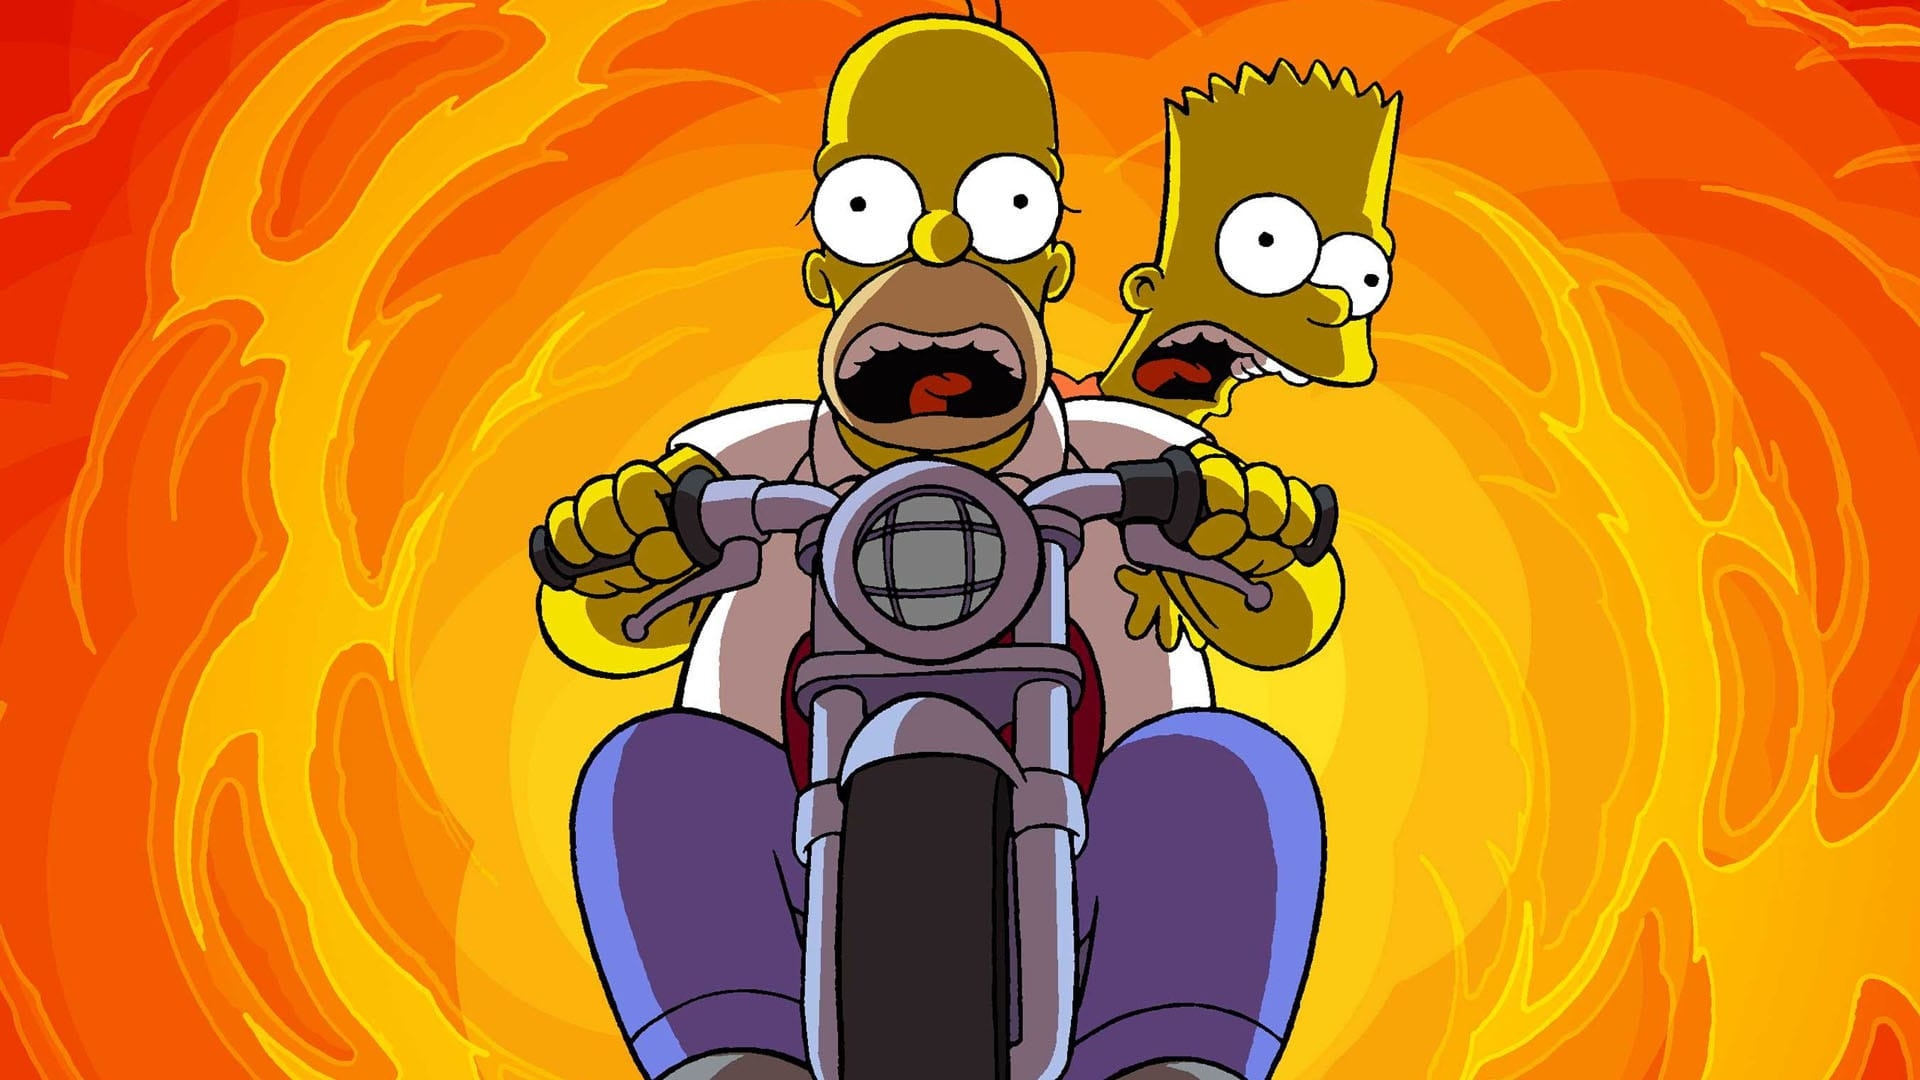 2560x1080 Homer Simpson And Bart Simpson 2560x1080 Resolution Wallpaper Hd Tv Series 4k Wallpapers Images Photos And Background